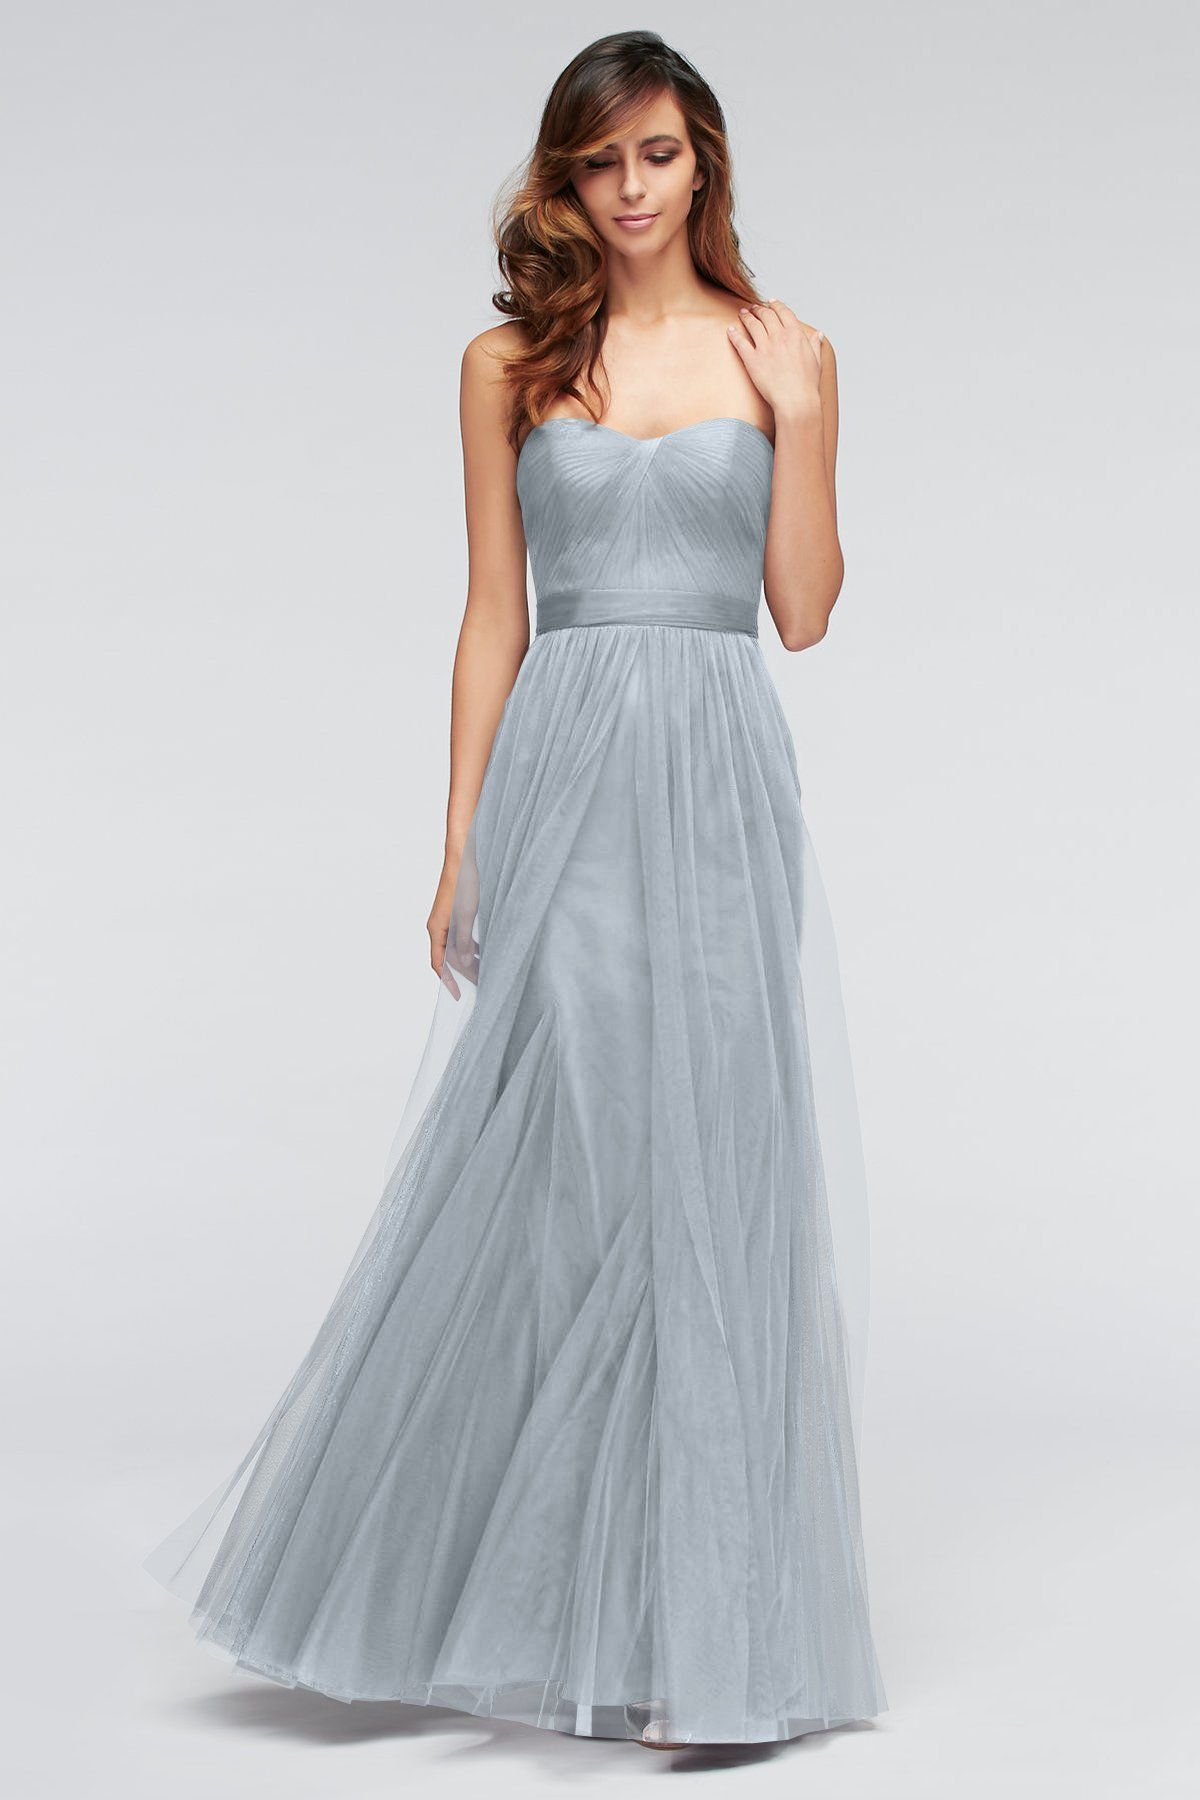 A sweetheart neckline and fluttering layers on the skirt make Heath ...